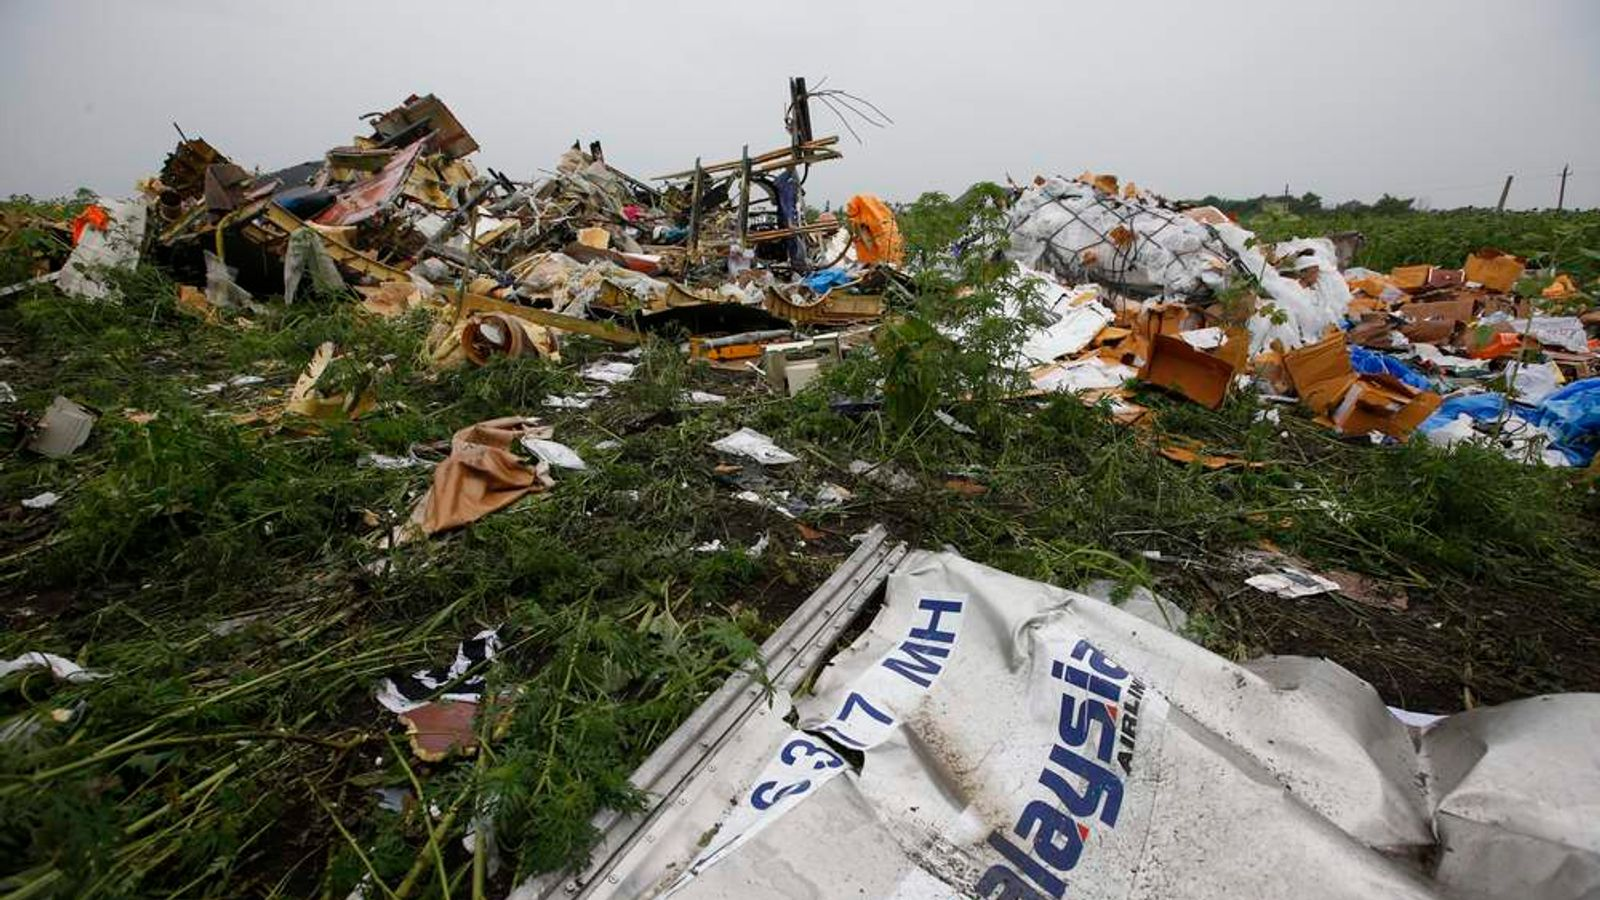 Wreckage from the nose section of a Malaysian Airlines Boeing 777 plane which was downed on Thursday is seen near the village of Rozsypne